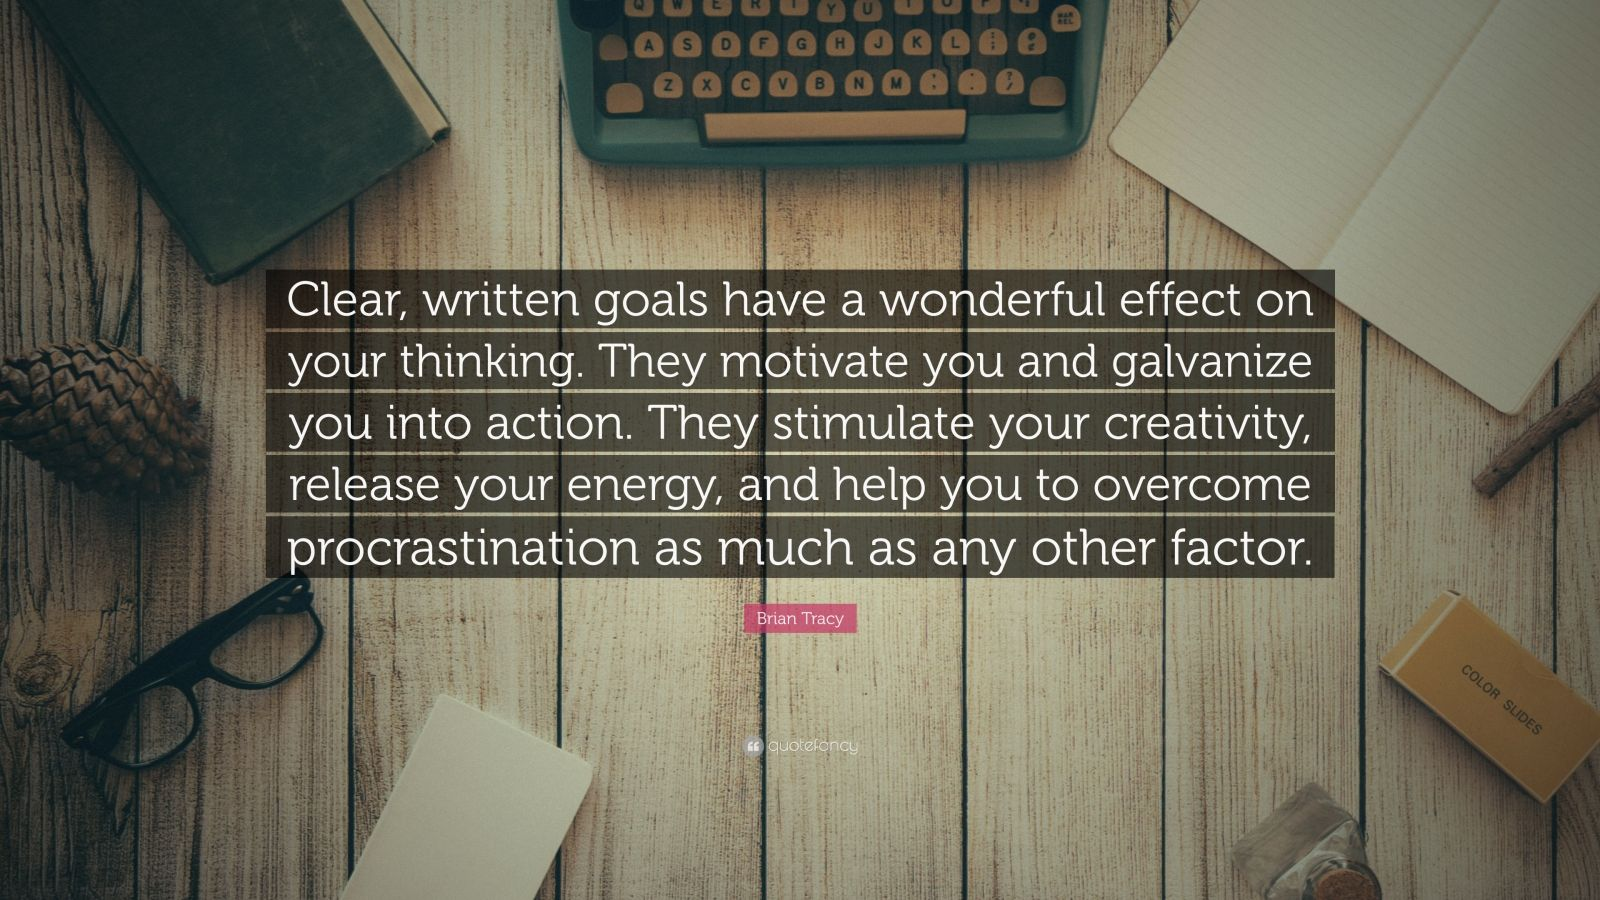 "Brian Tracy Quote: ""Clear, written goals have a wonderful effect on your thinking. They motivate you and galvanize you into action. They stimulate your creativity, release your energy, and help you to overcome procrastination as much as any other factor."""